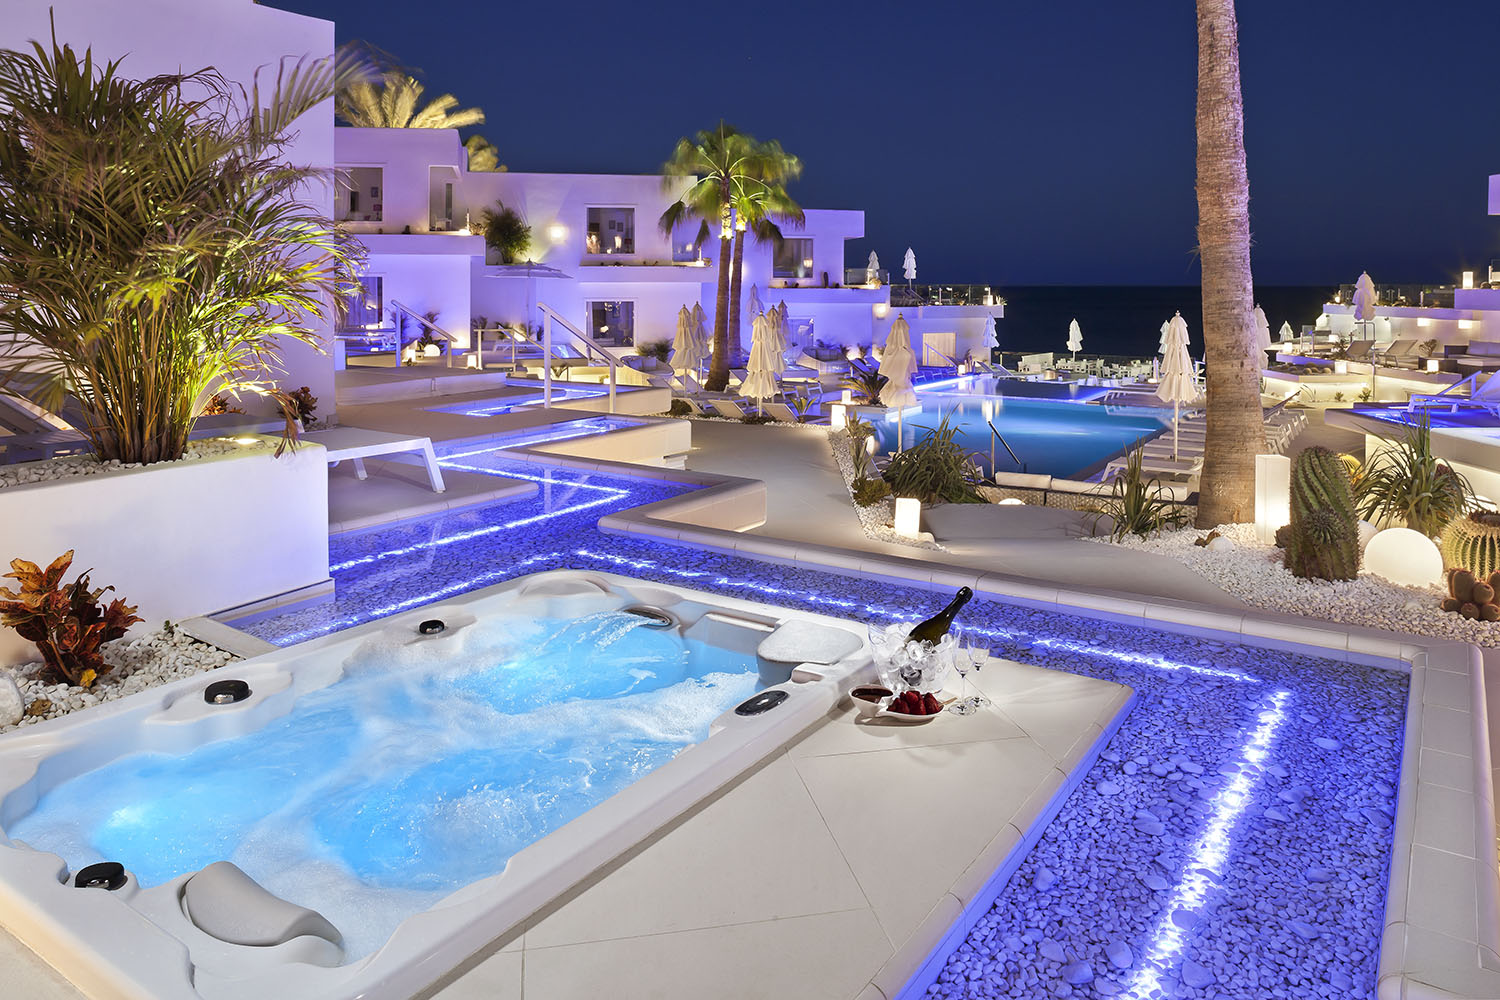 Lani's Suites Deluxe, Canary Islands, Spain,hotels in Spain